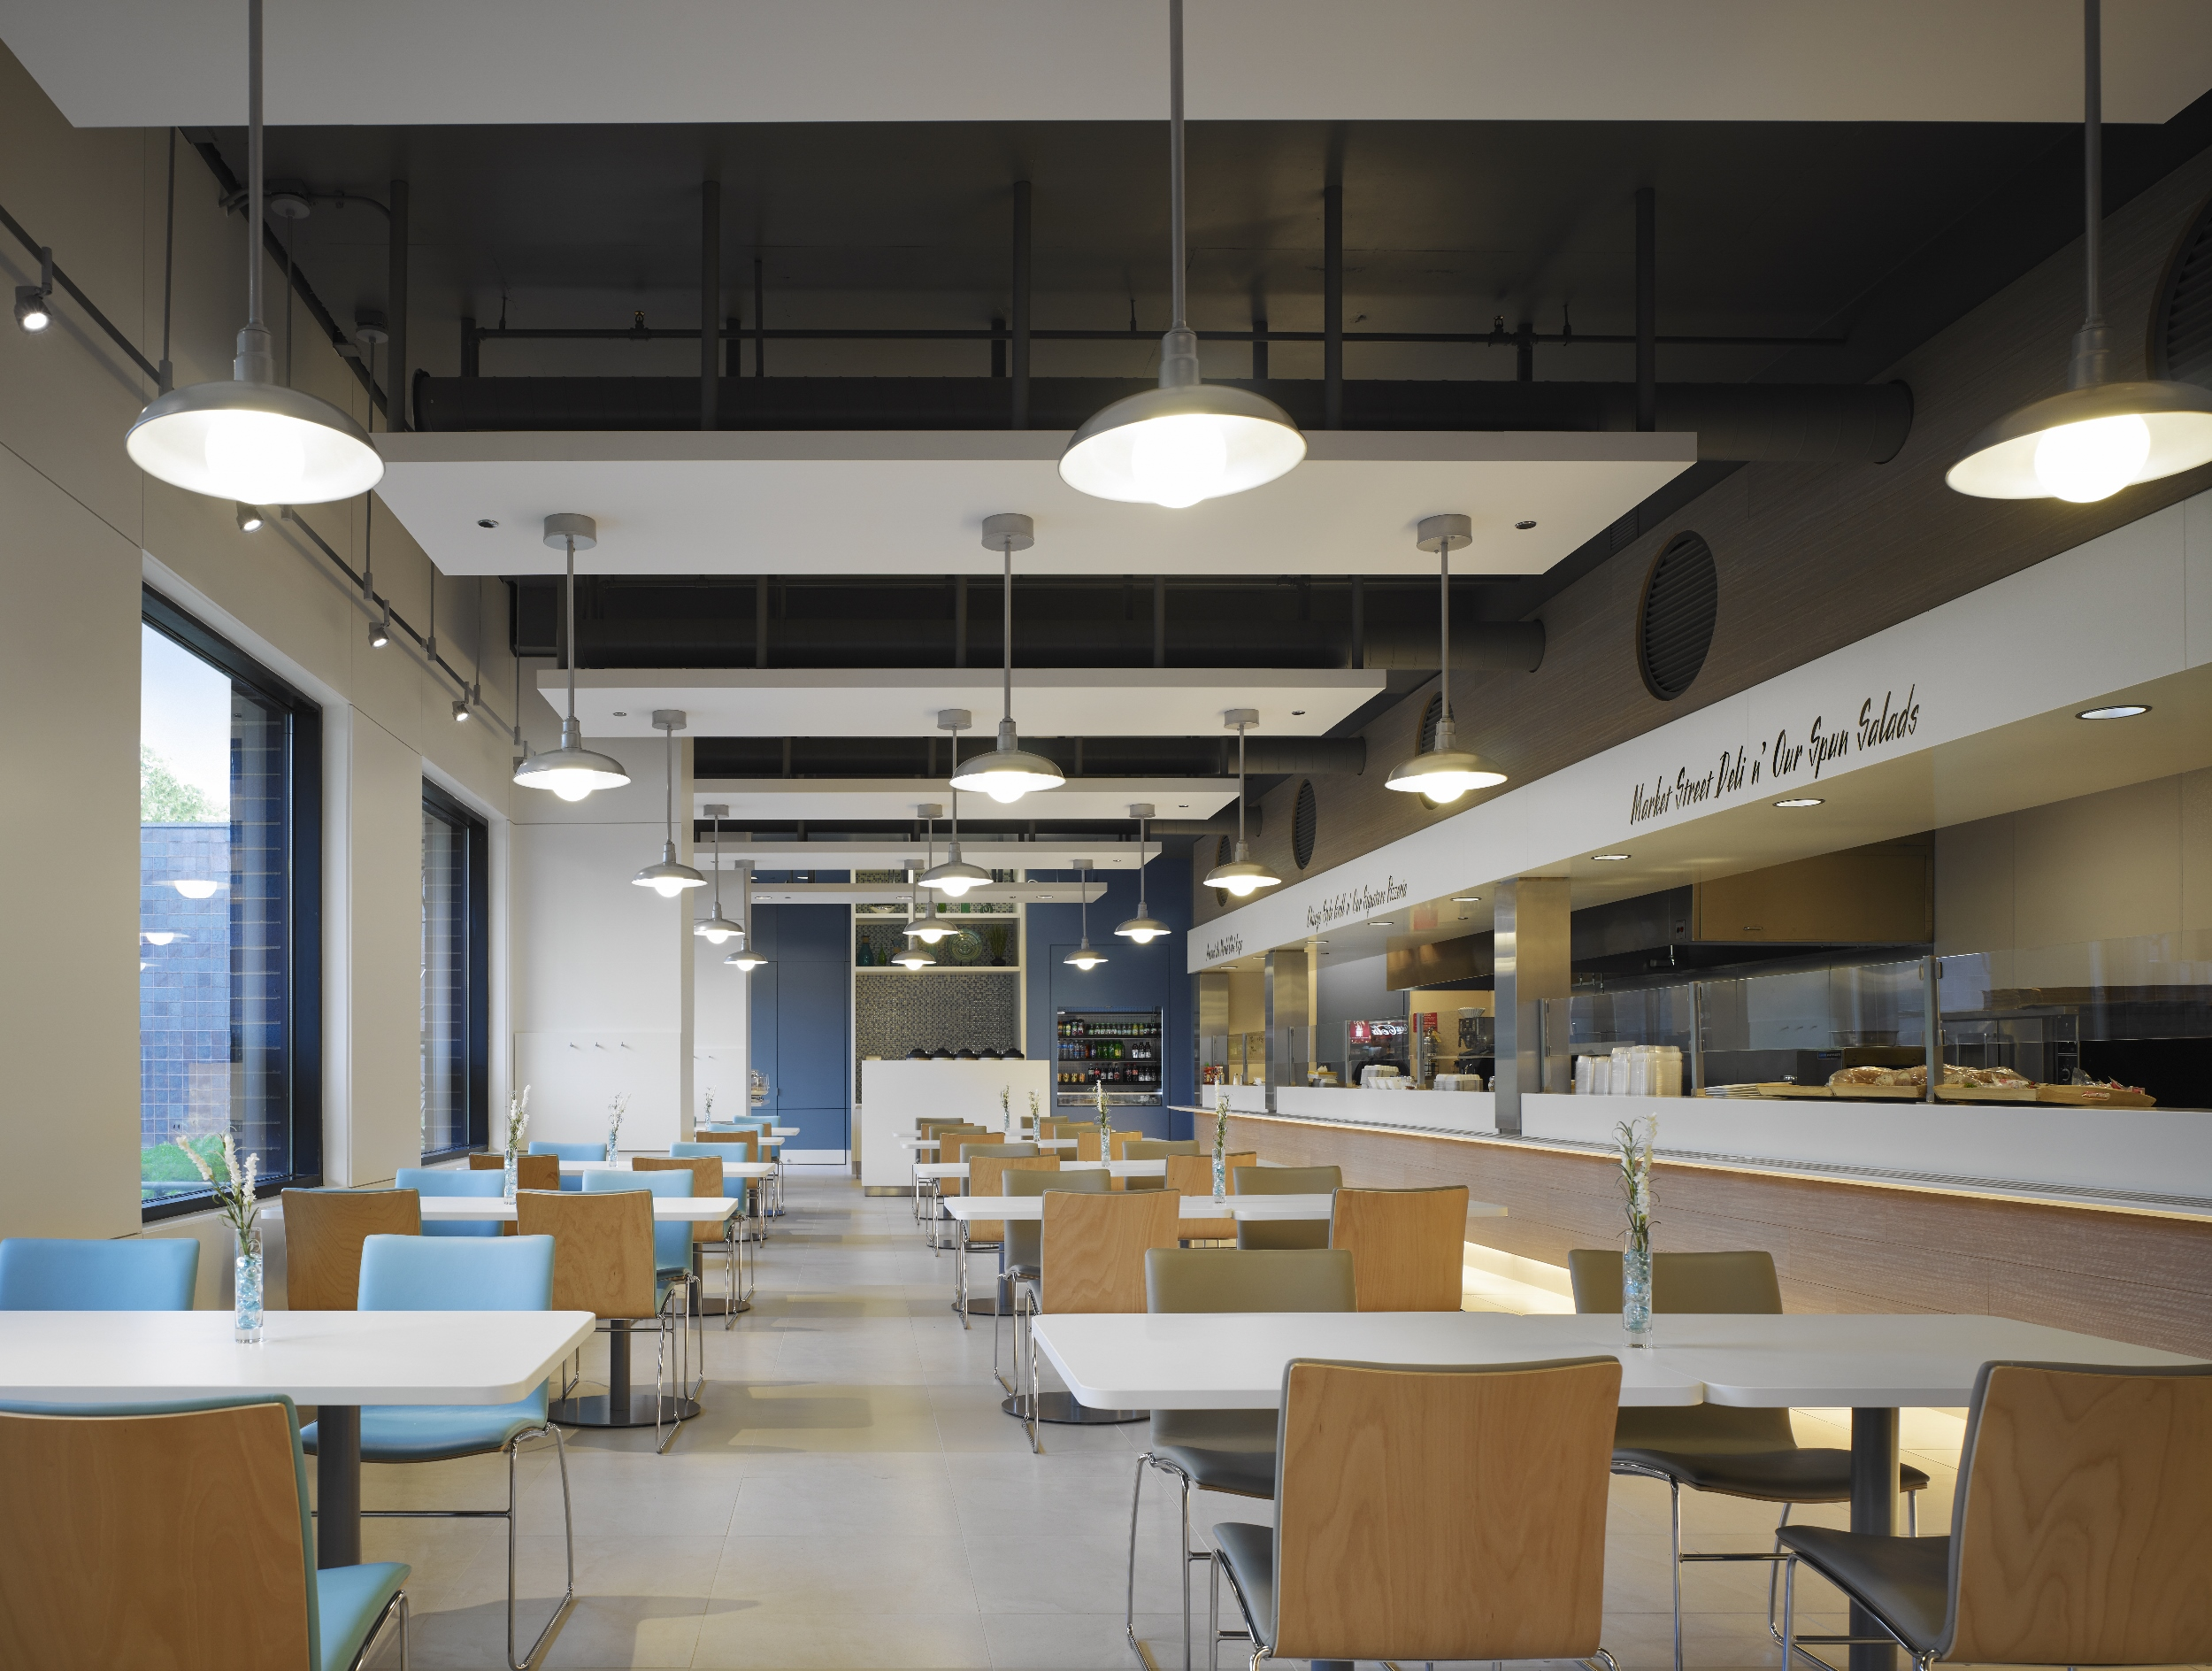 Cafe within Wintrust Corporate HQ.